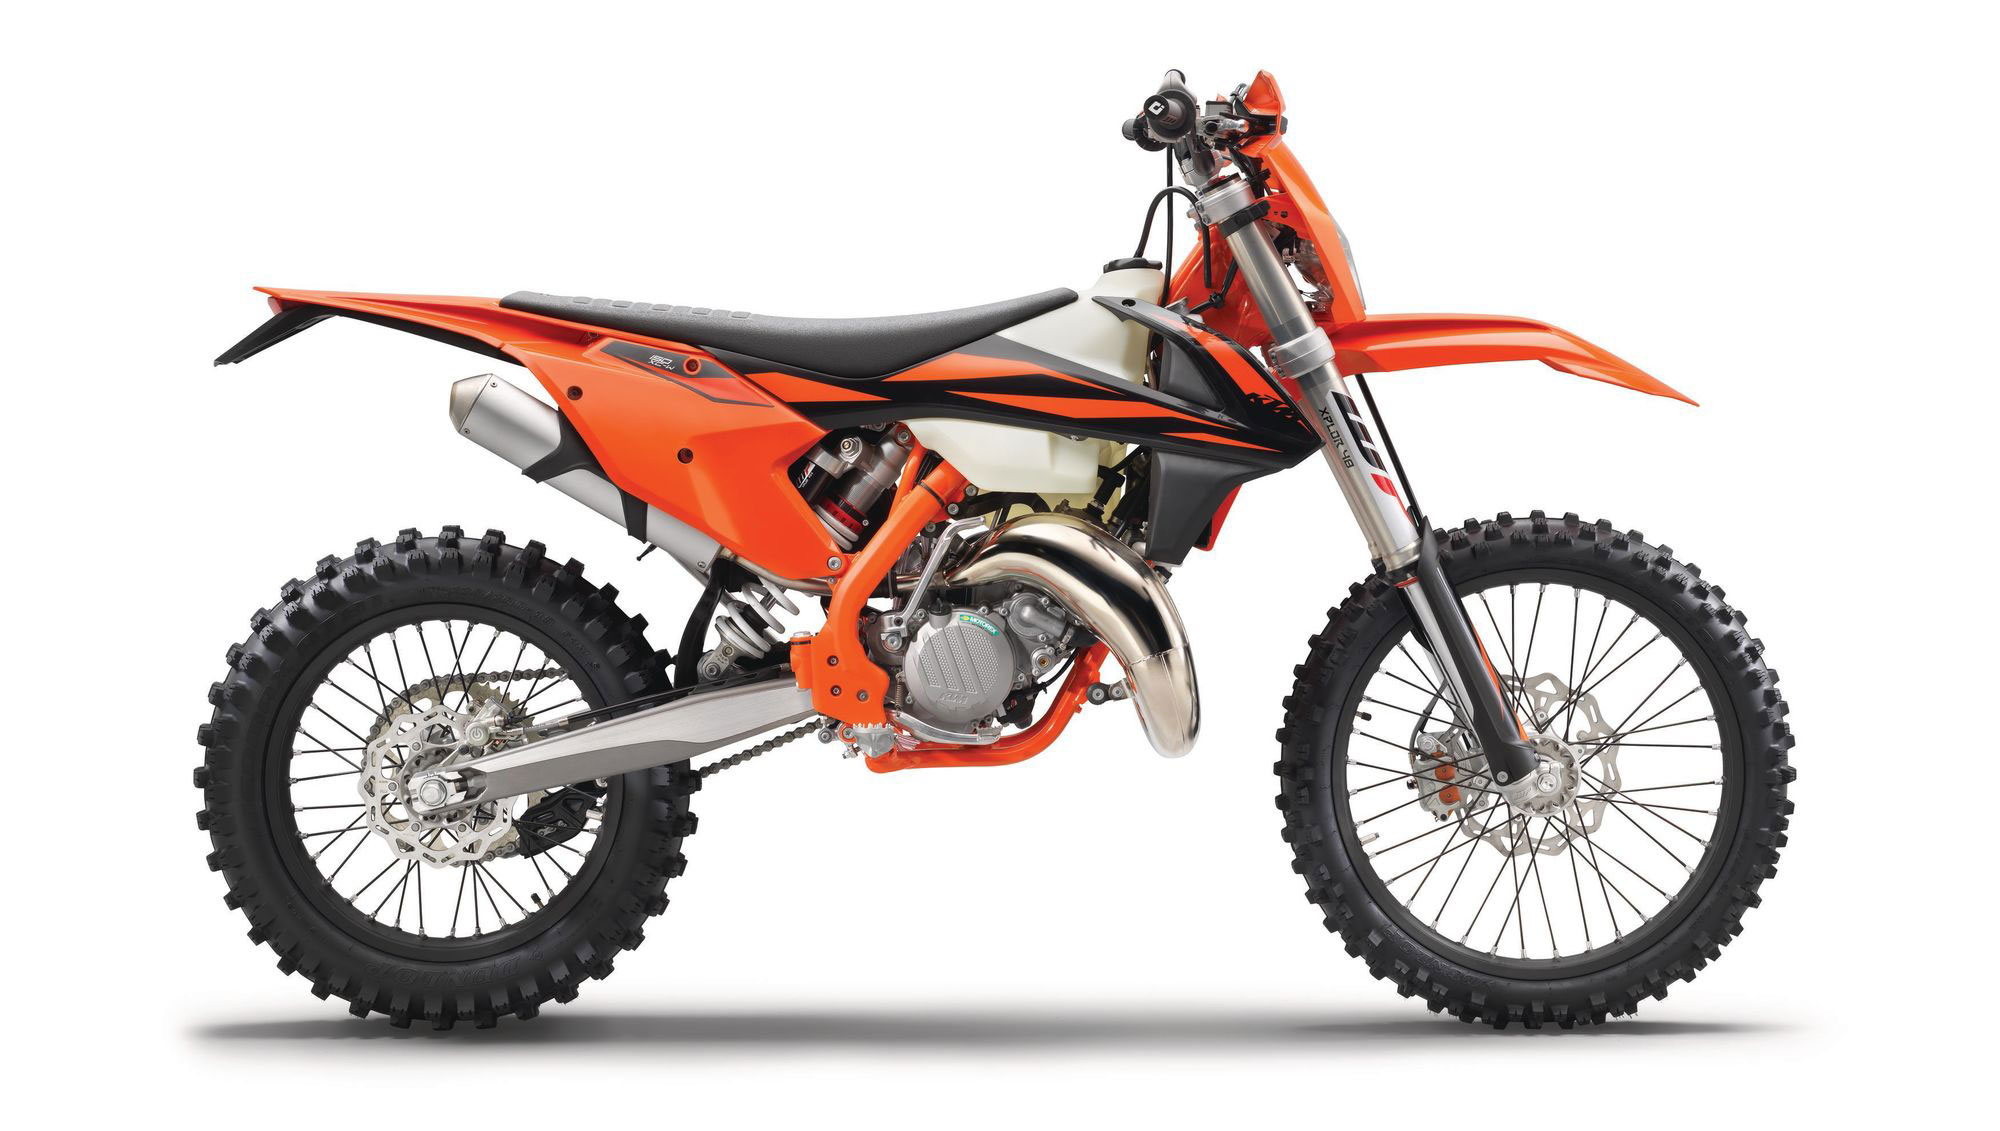 2019 ktm 150 xc w guide totalmotorcycle. Black Bedroom Furniture Sets. Home Design Ideas